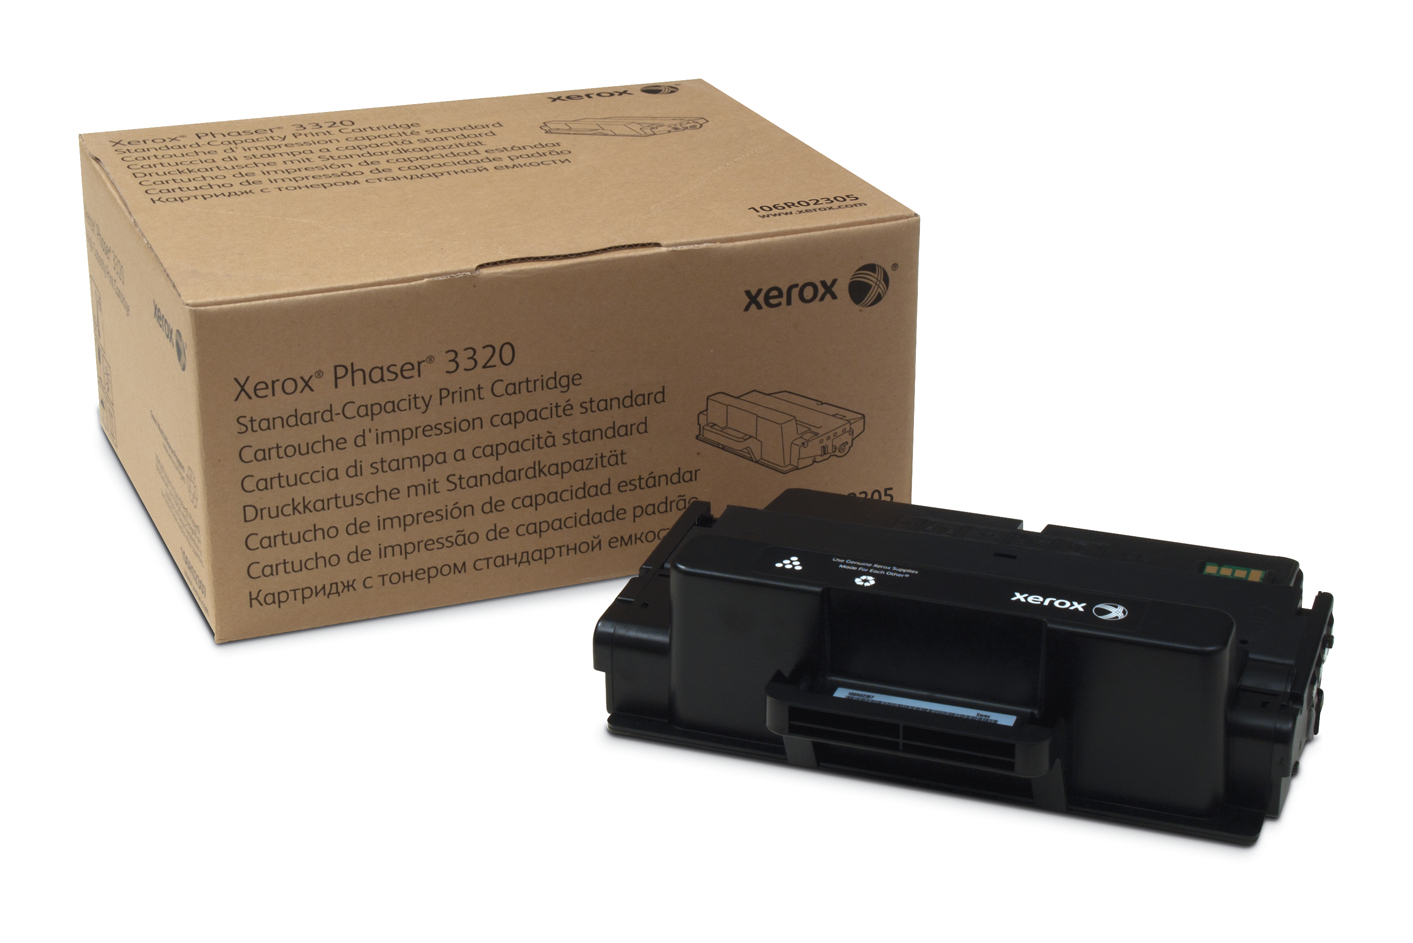 Xer106r02305   Xerox Phaser 3320 Standard     Toner Cartridge 5000pages                                    - UF01